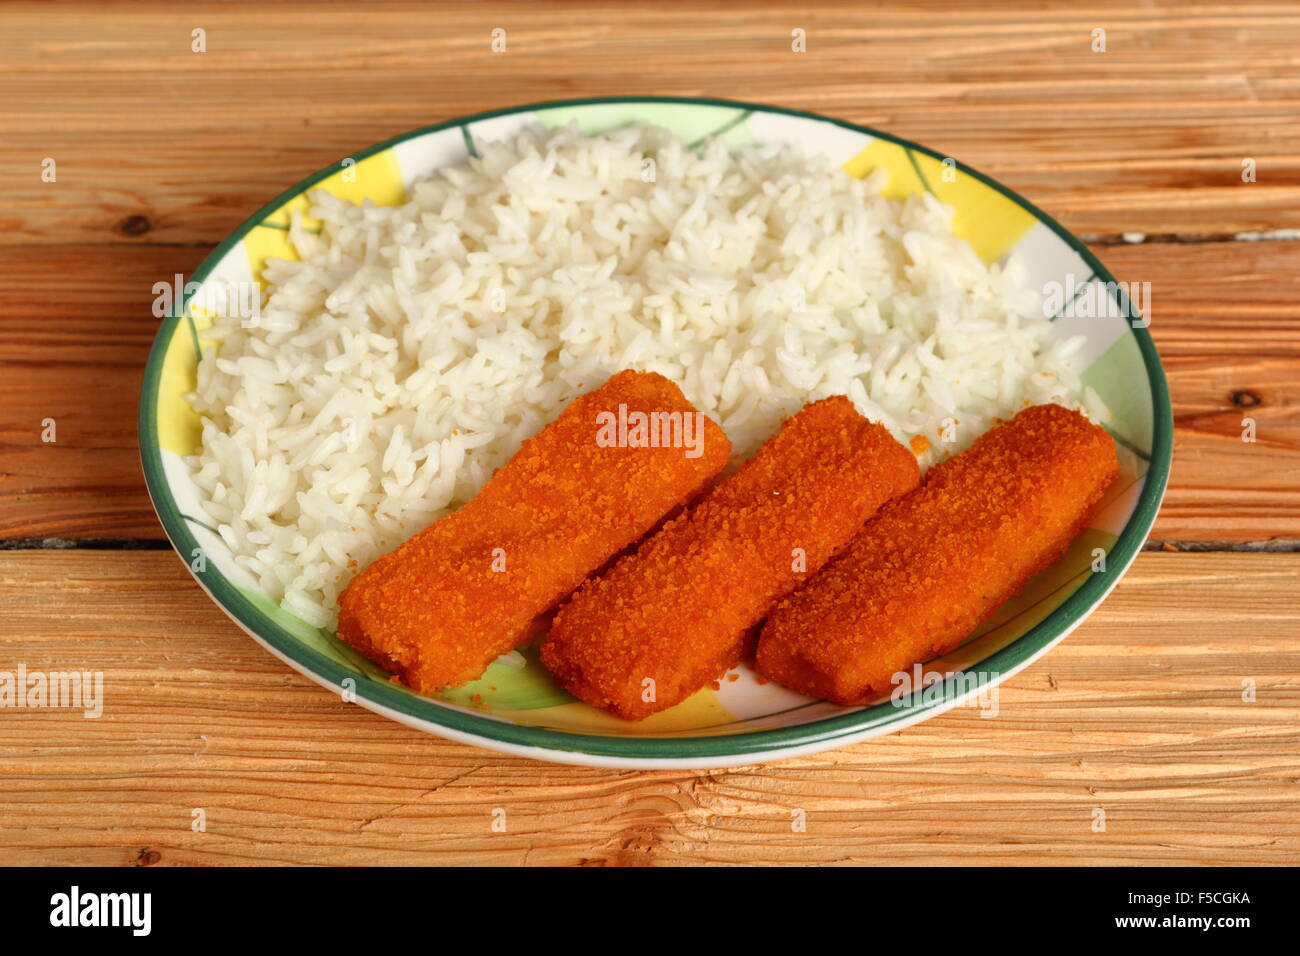 Stock Photo Rice And Fish Fingers 89401630 on My Lunch Plate